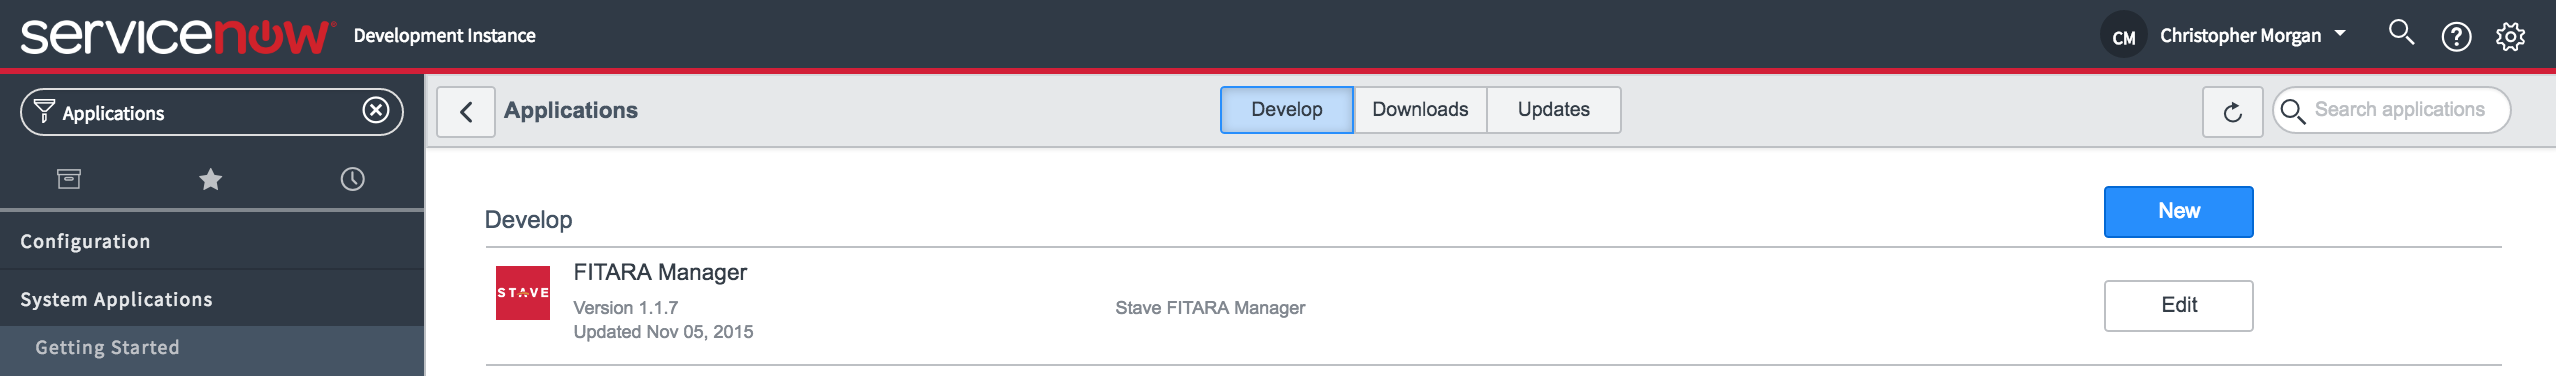 servicenow create new scoped application